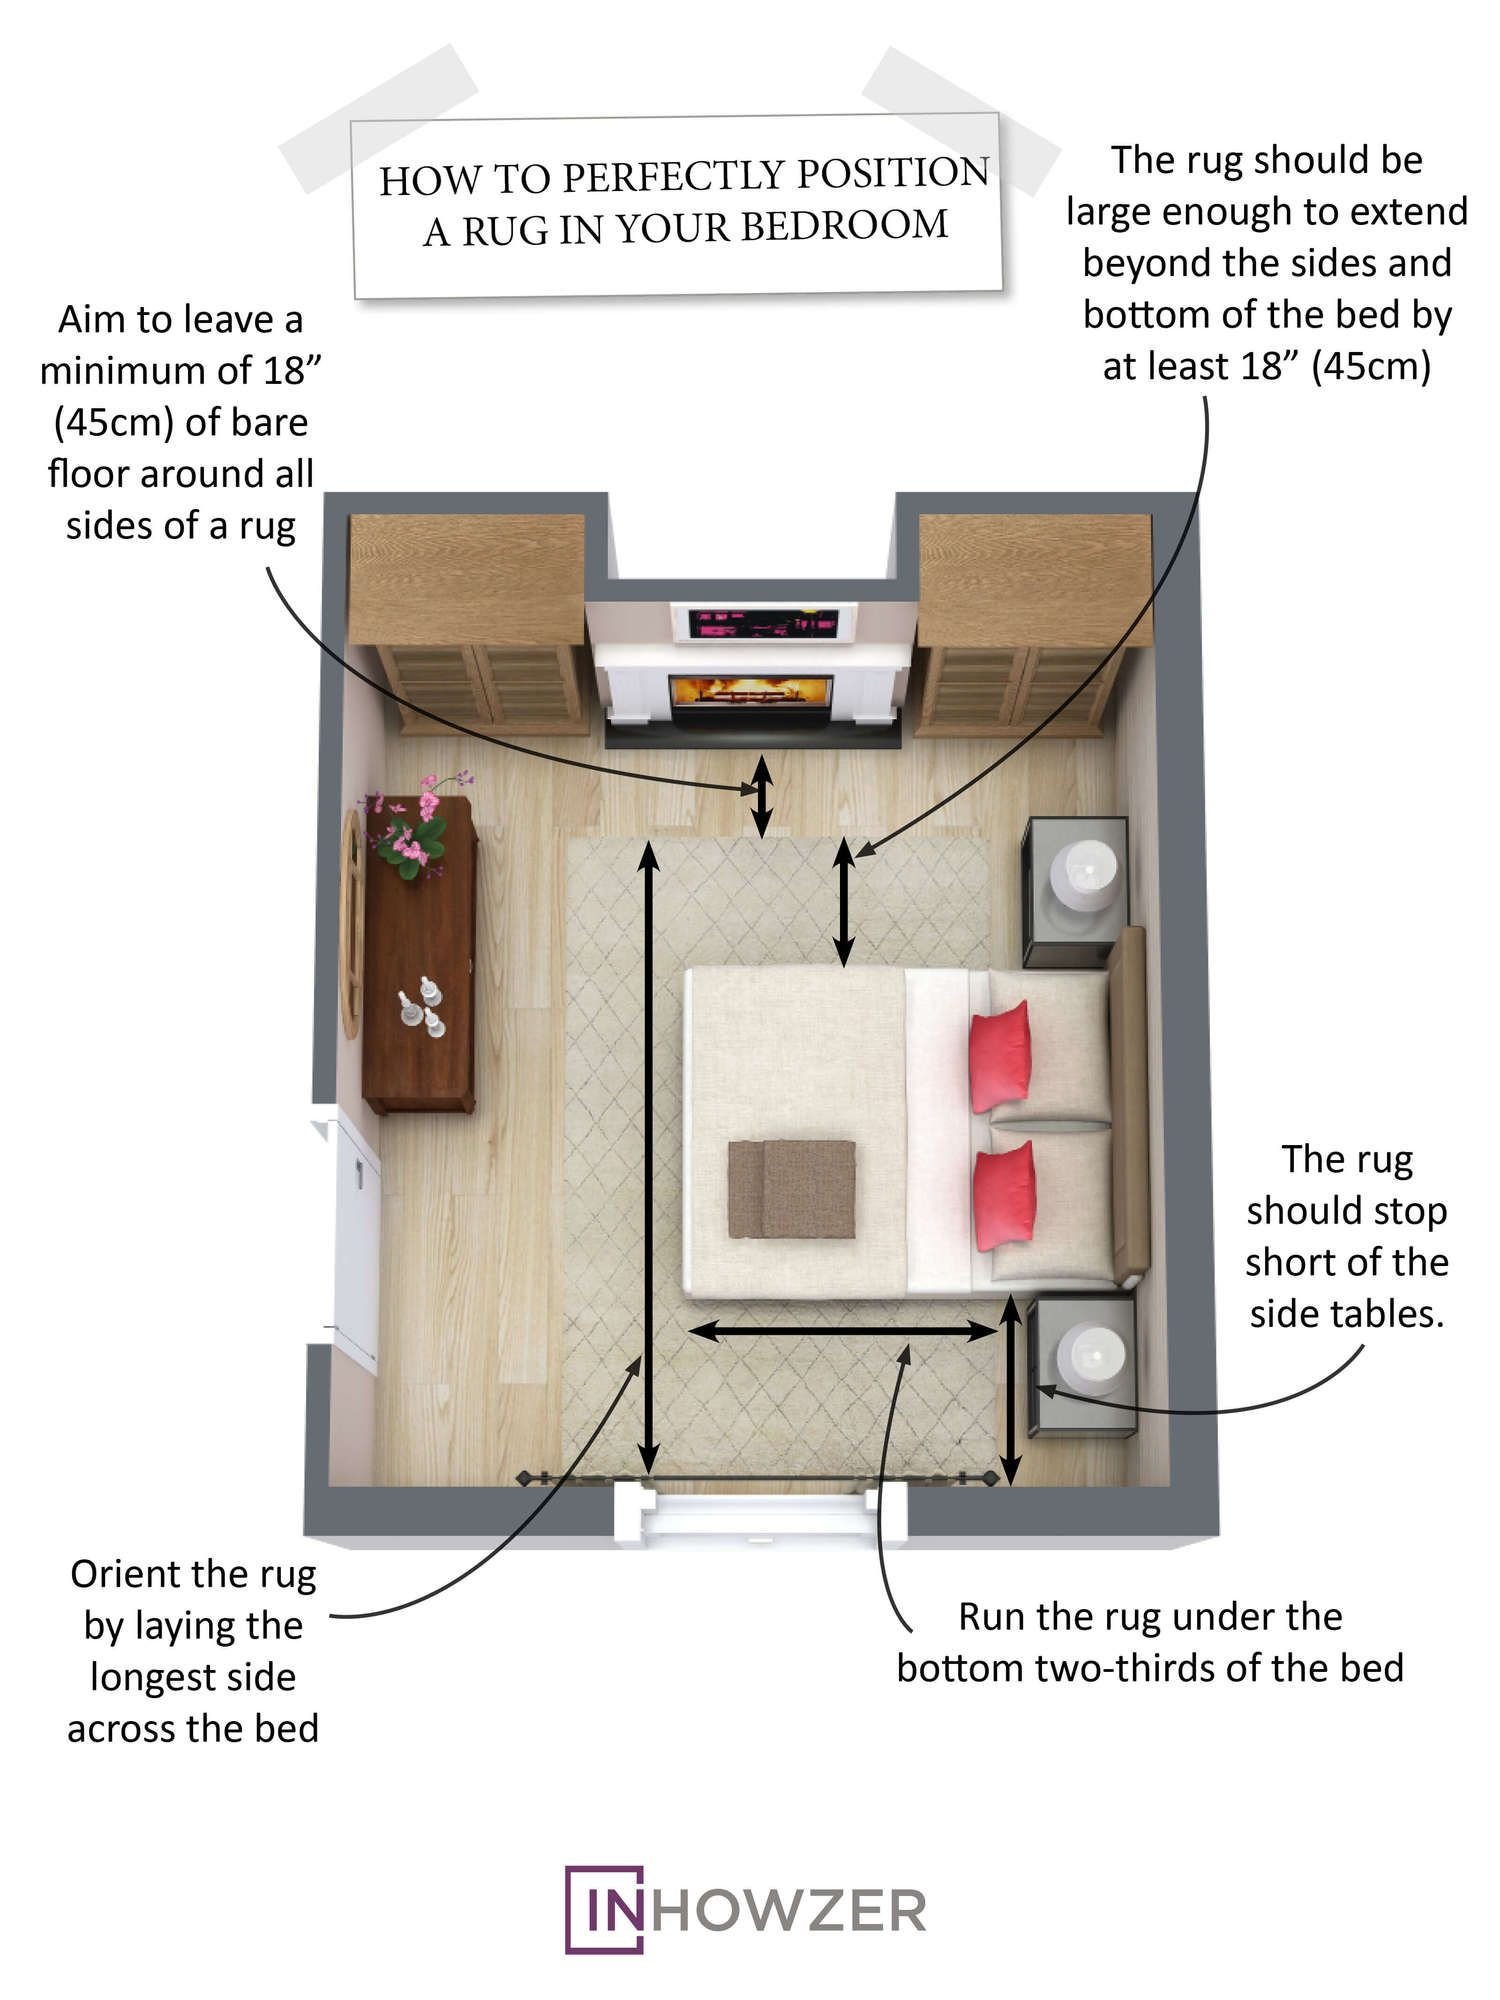 HOW TO PERFECTLY POSITION A RUG IN YOUR BEDROOM | Bed sizes, Living ...